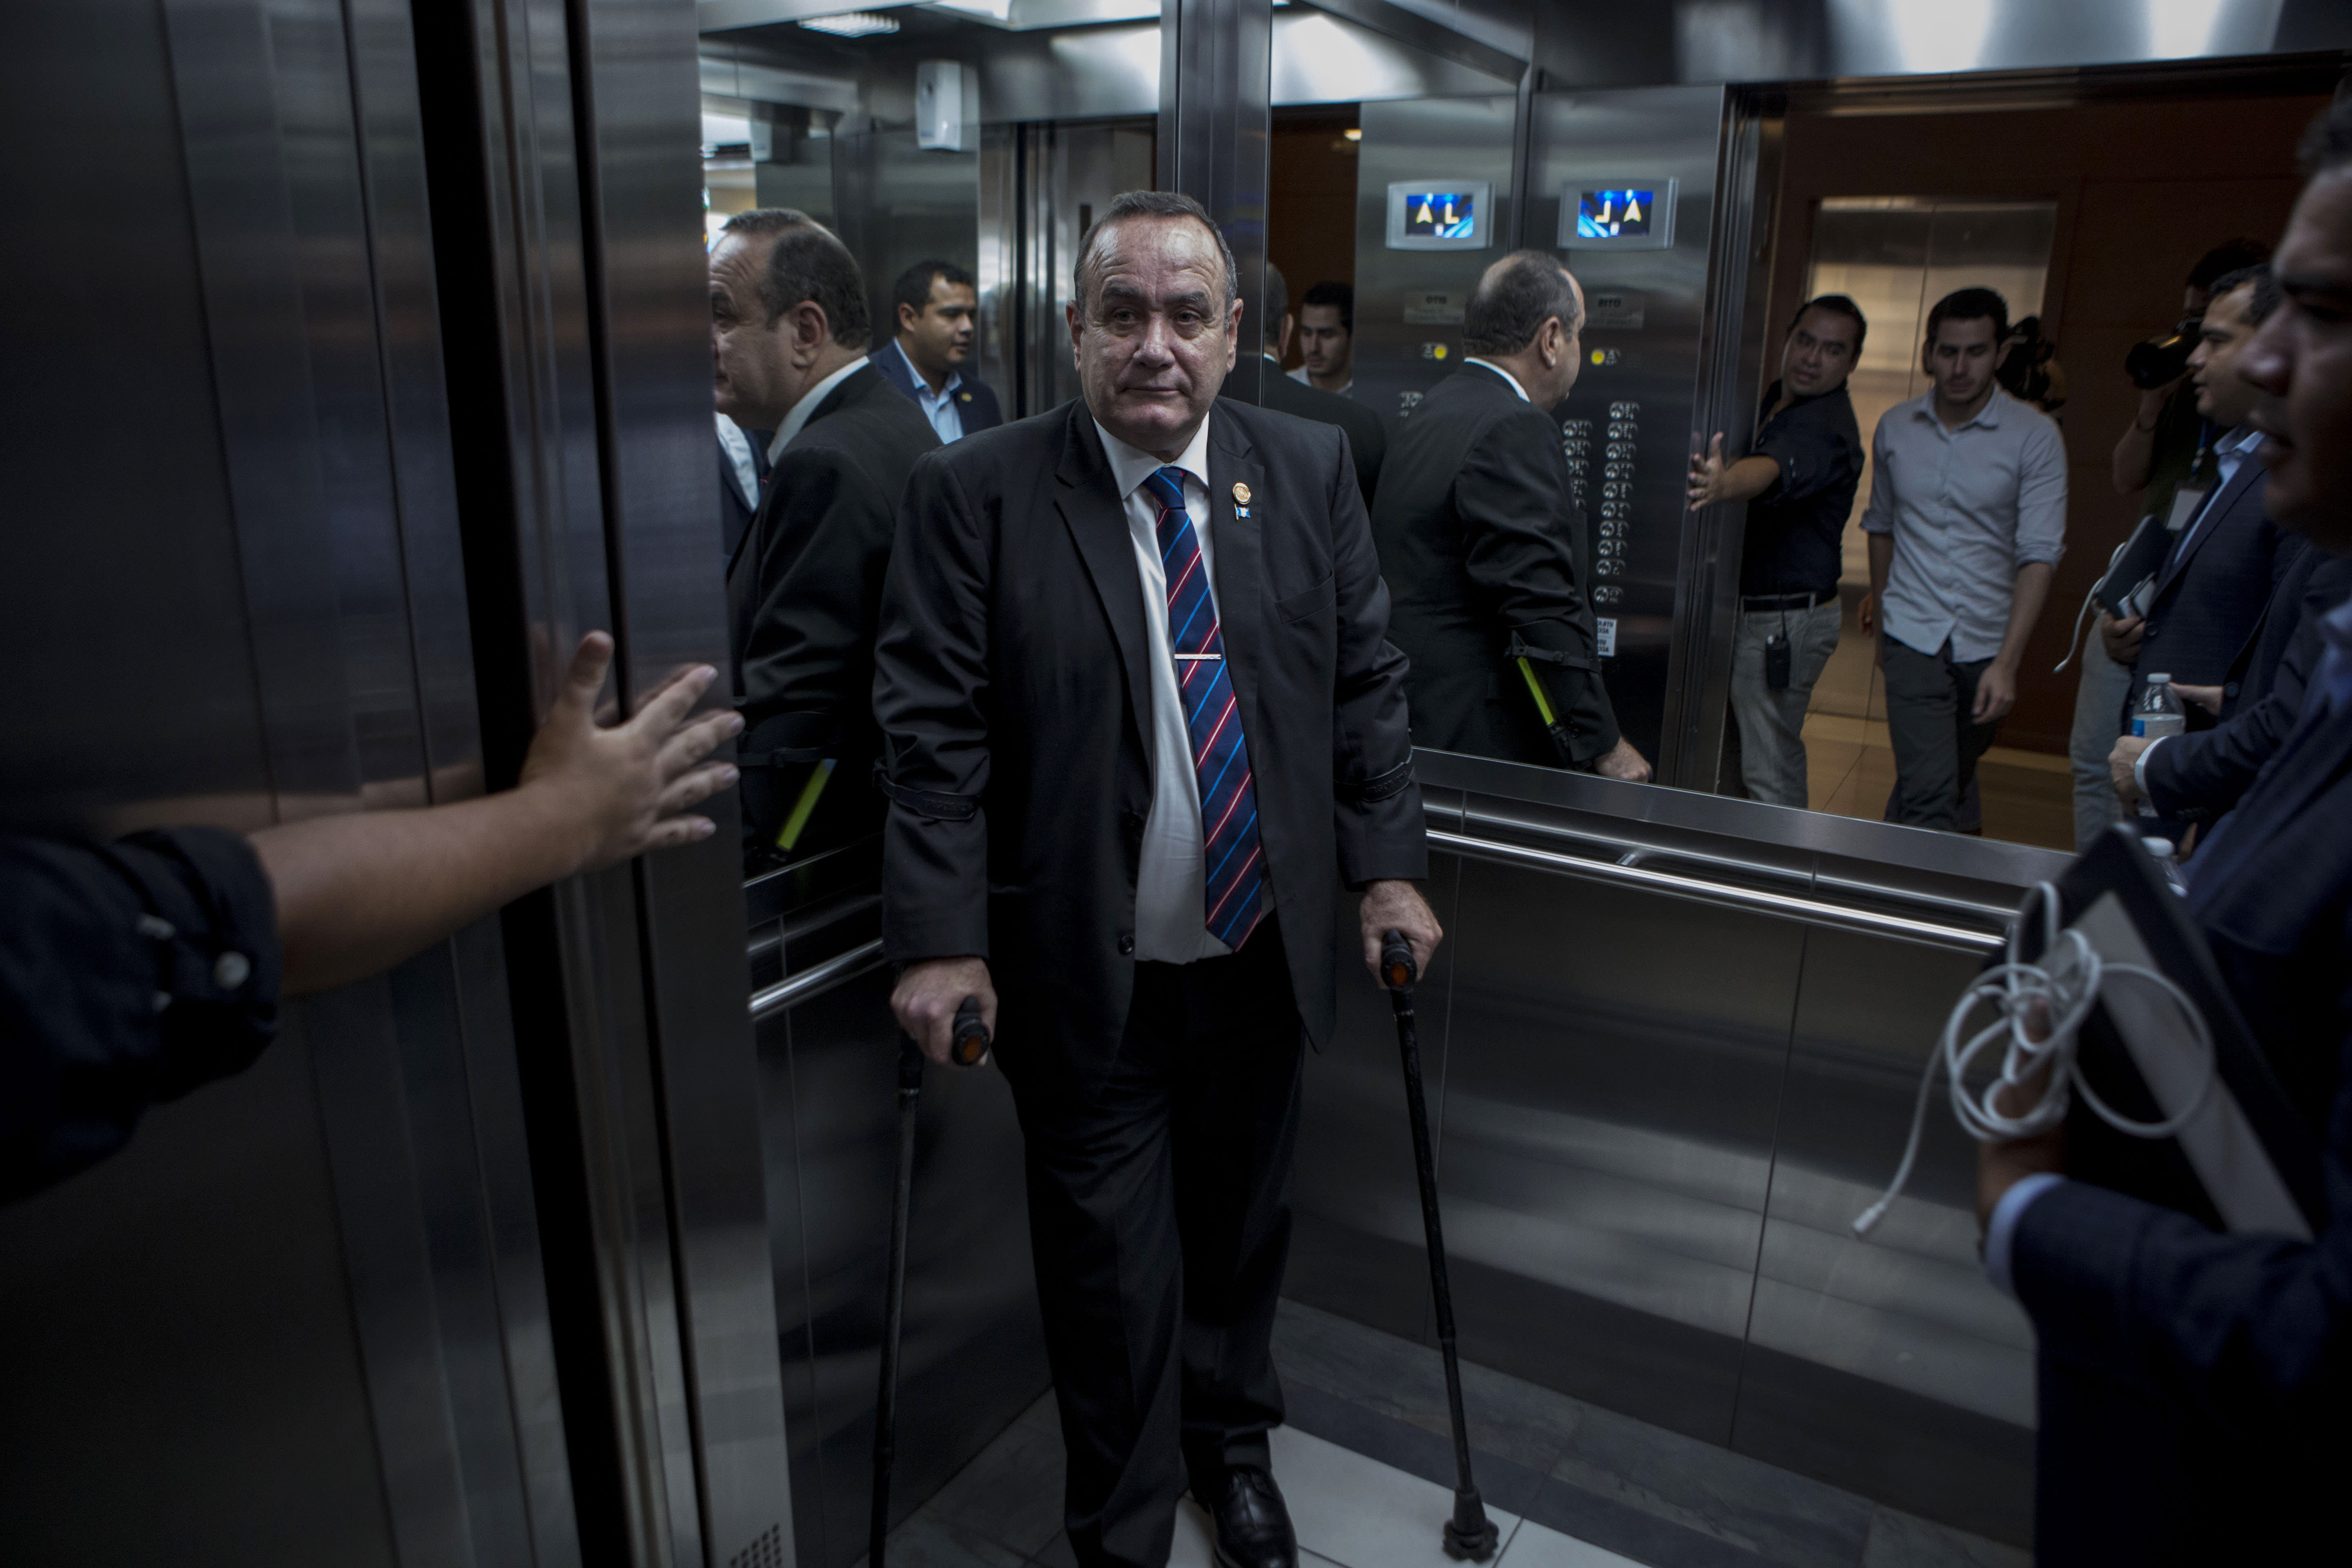 """Guatemala's President-elect Alejandro Giammattei stands in an elevator as he arrives for an interview in Guatemala City, Tuesday, Aug. 13, 2019. Giammattei said Tuesday that Guatemala will not be able to hold up its side of an immigration agreement with the United States by serving as a """"safe third country"""" for asylum seekers. (AP Photo/Oliver de Ros)"""